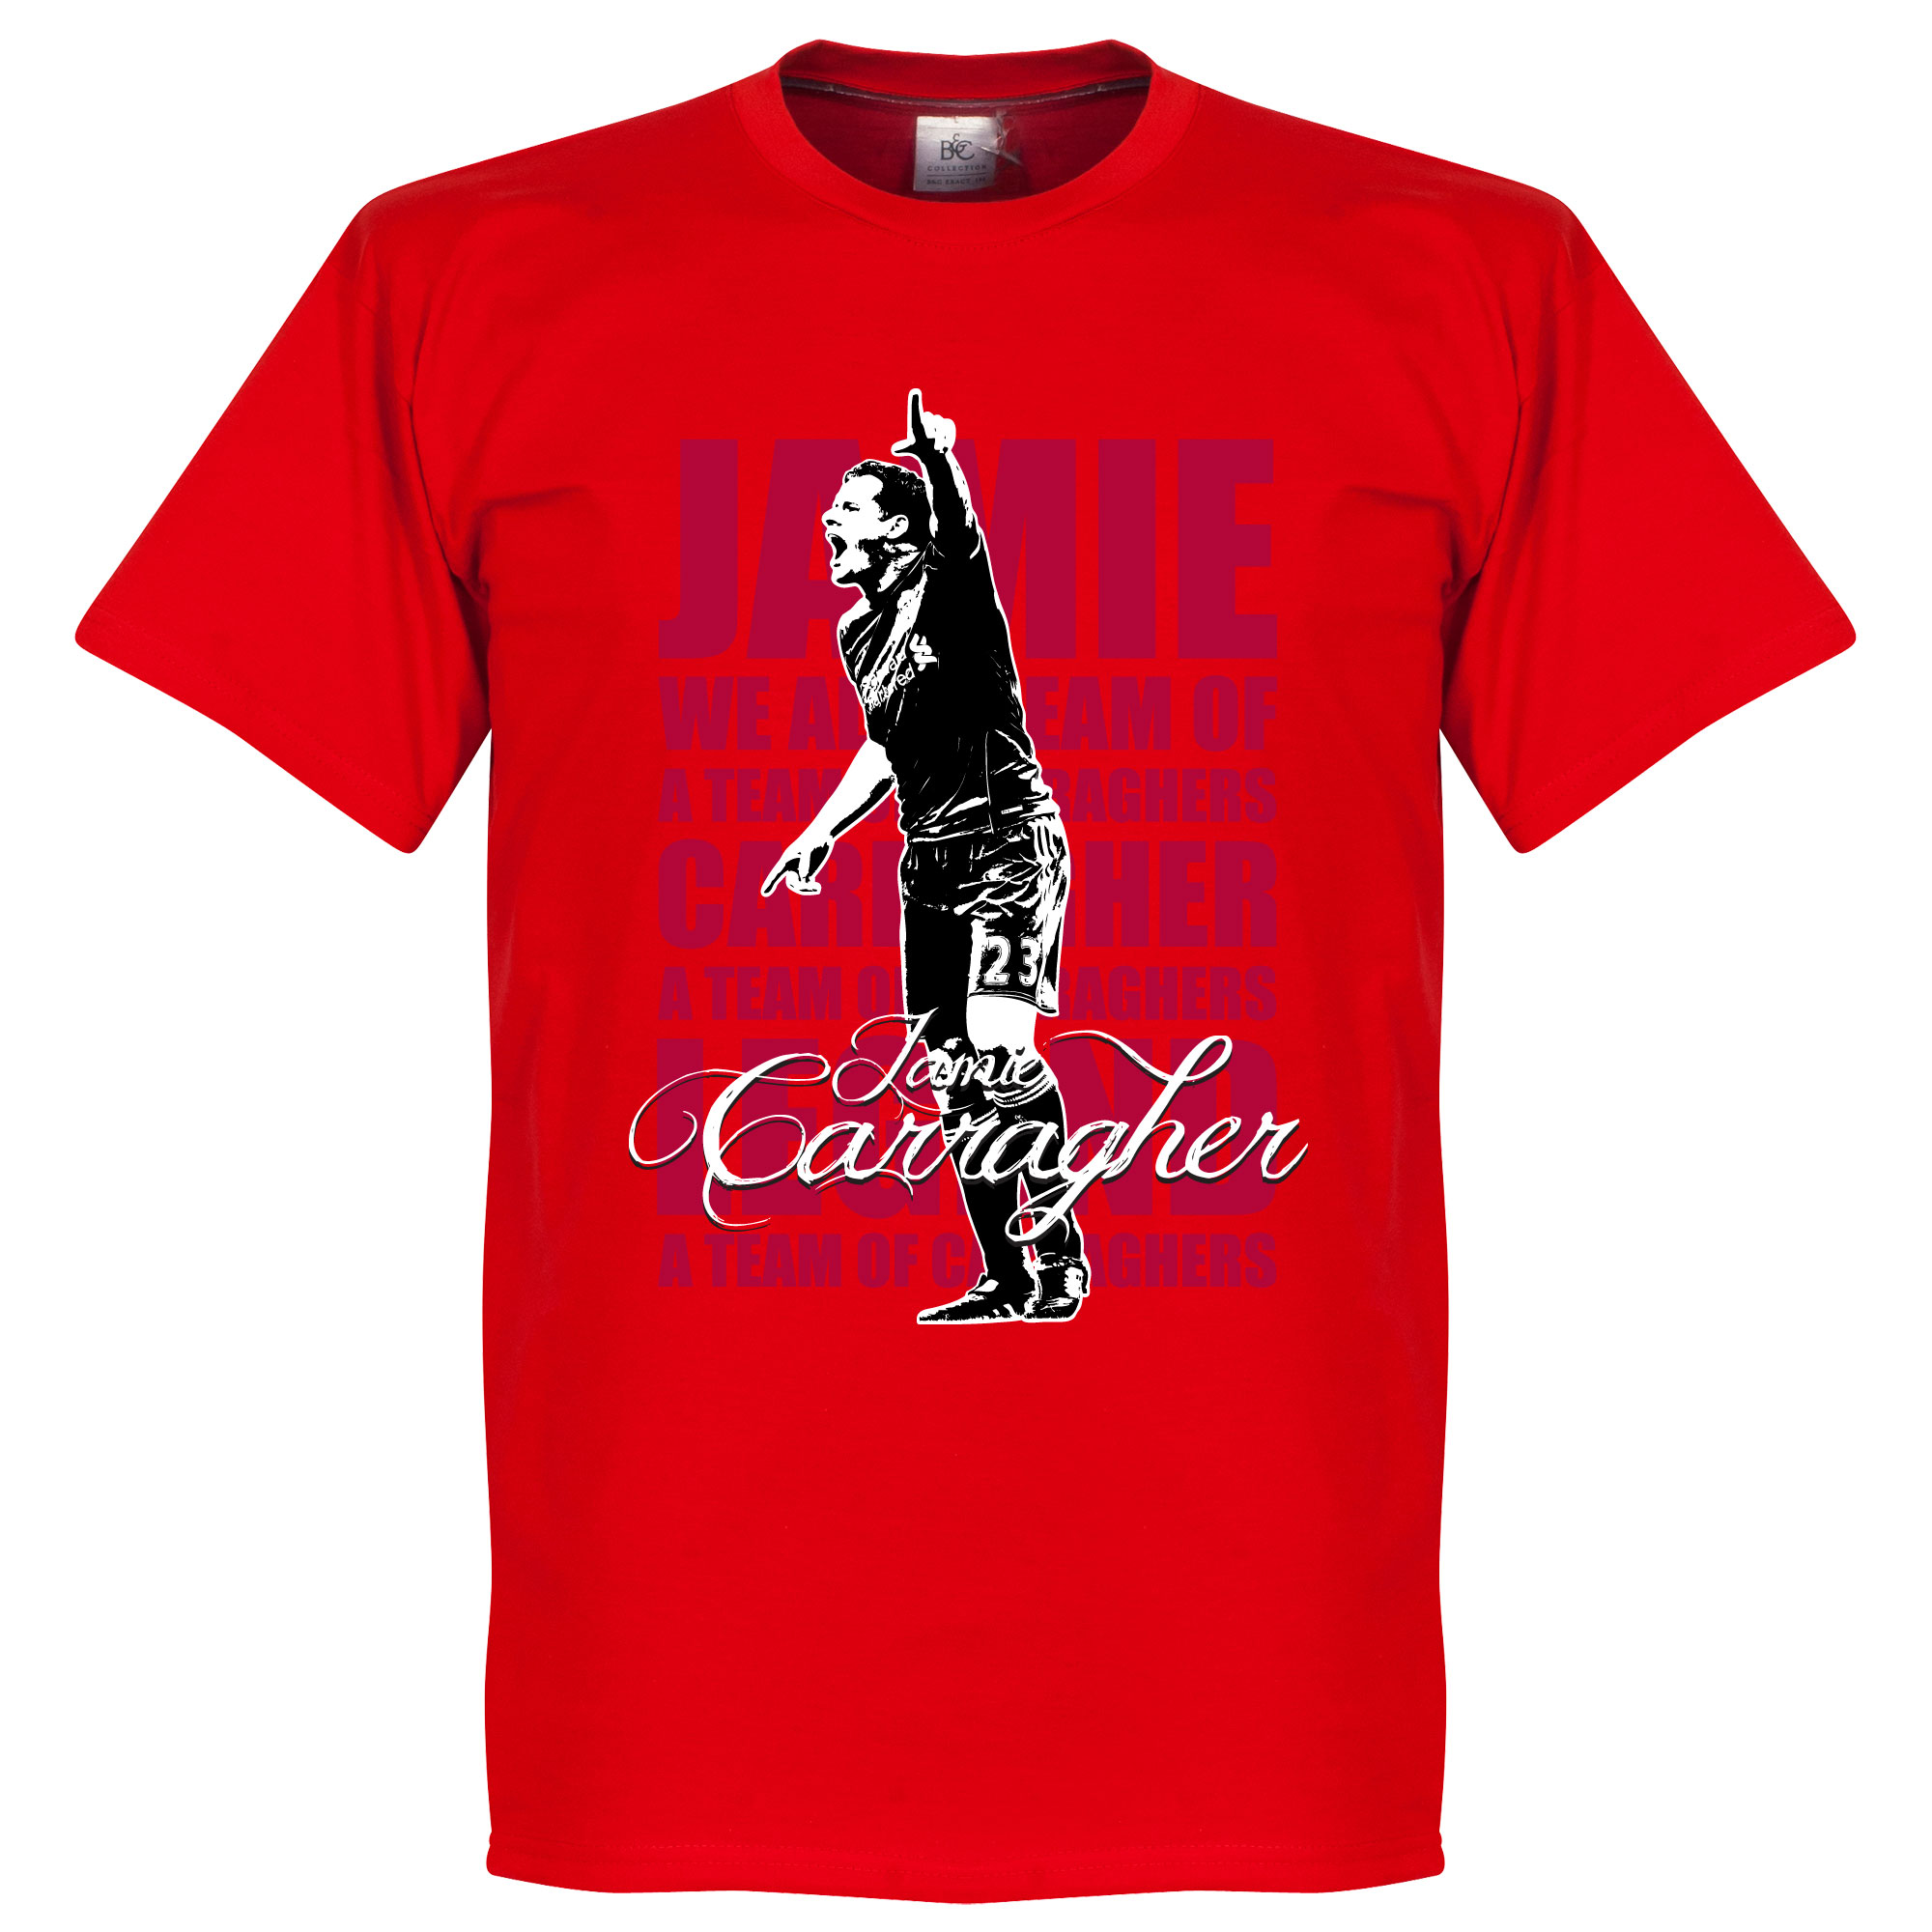 Jamie Carragher Legend Tee - M